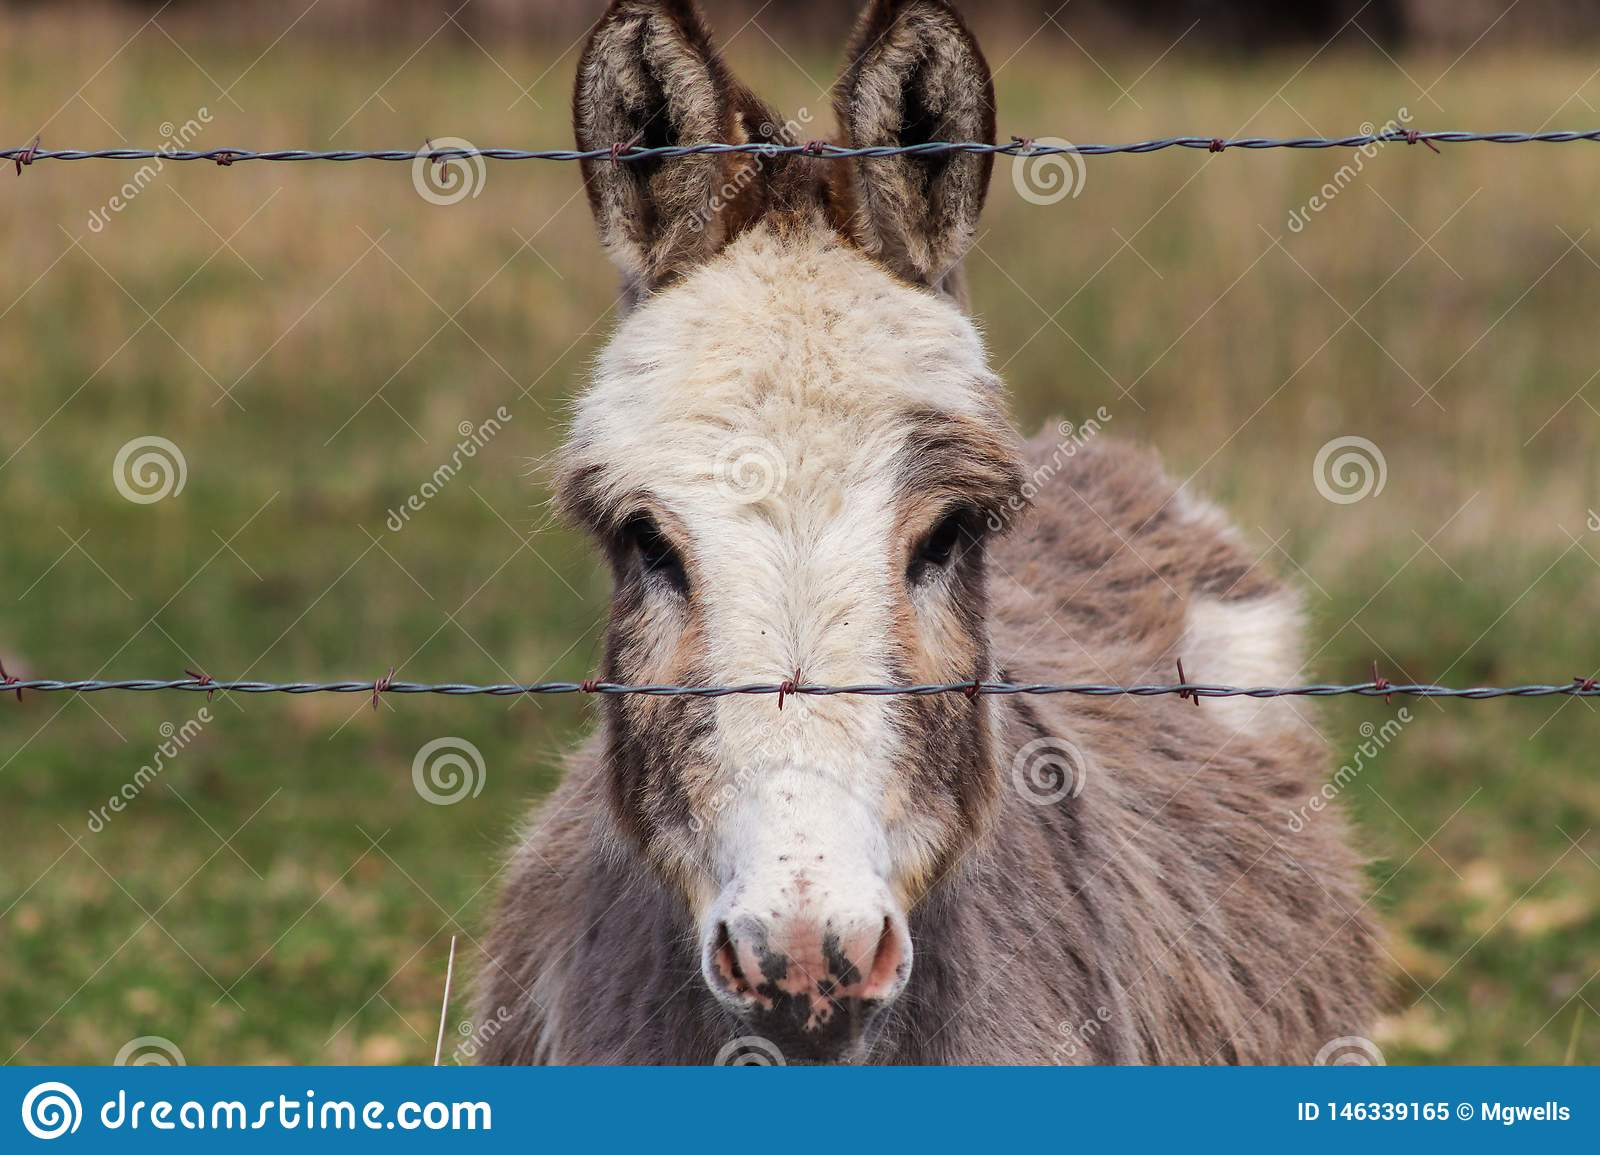 Head shot of a miniature donkey behind fence